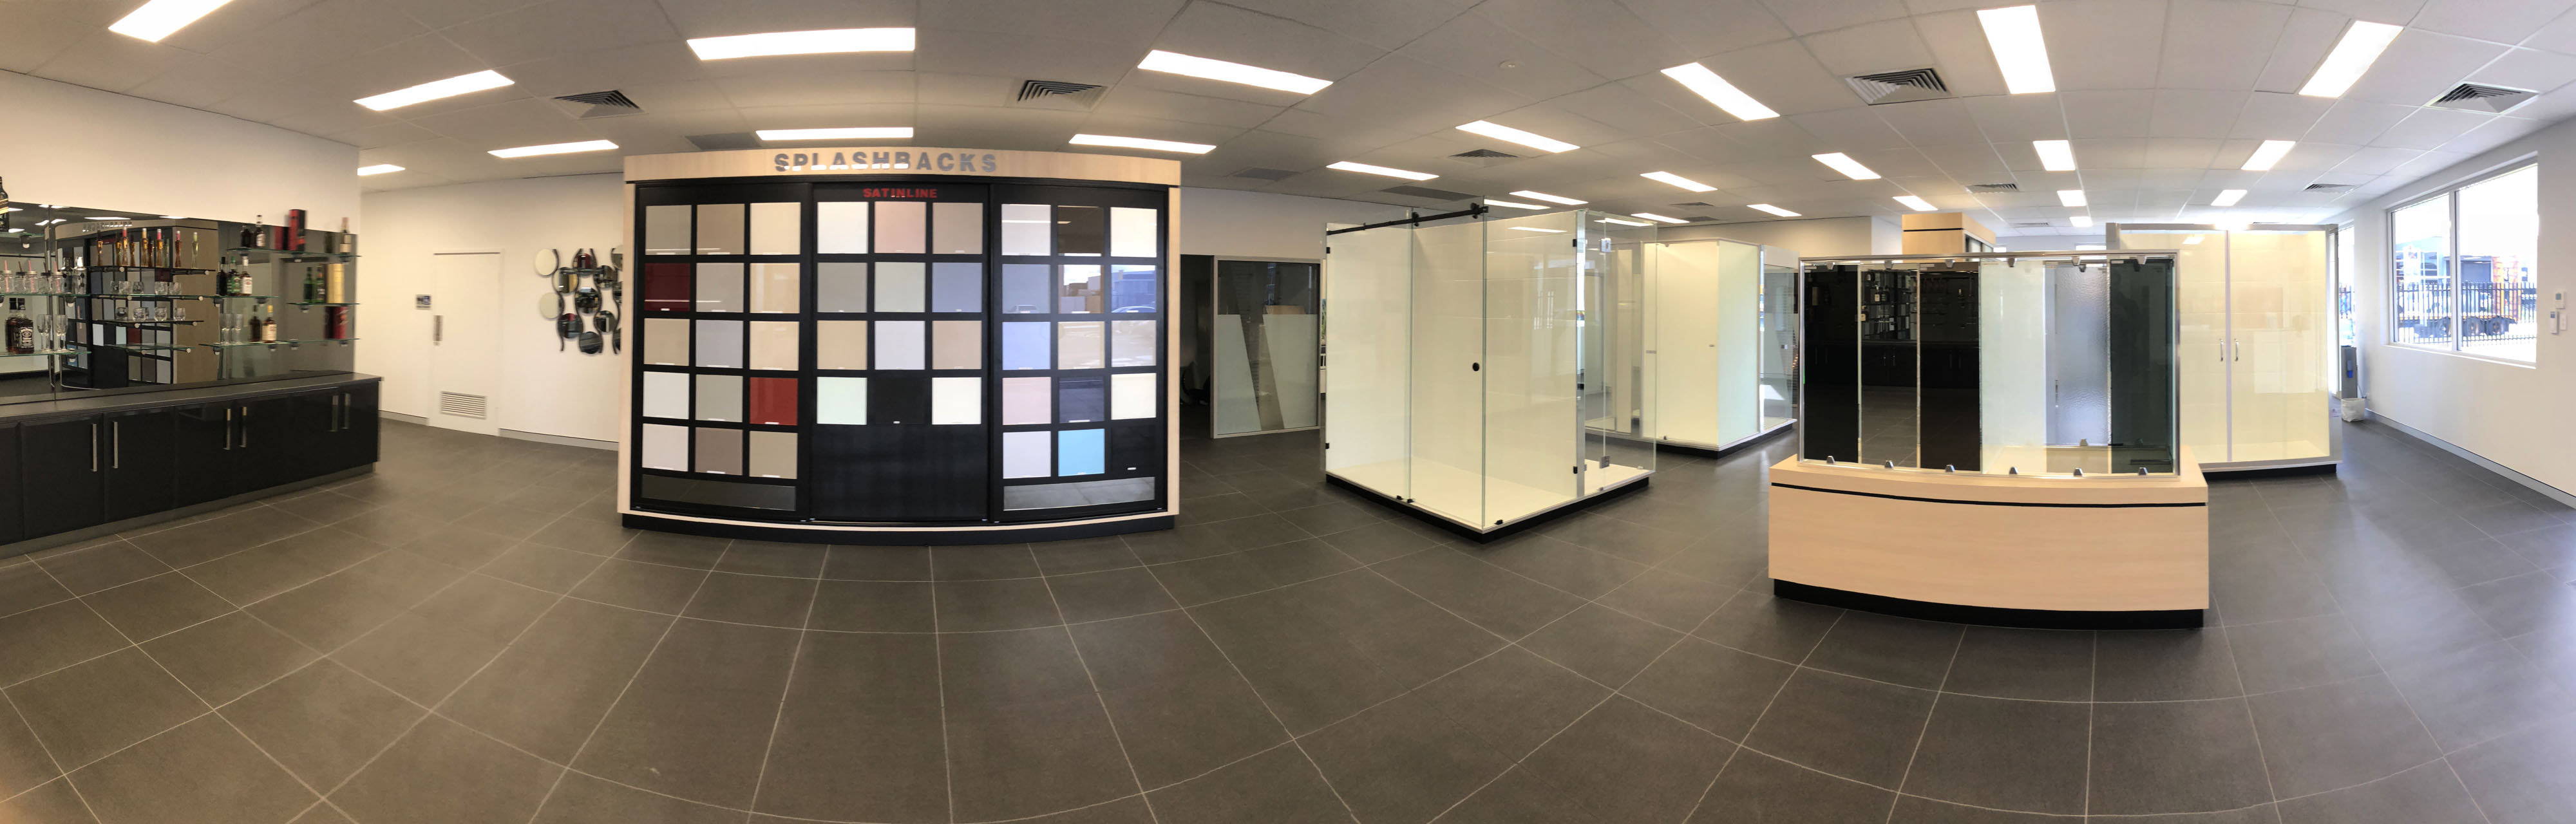 Direct internal showroom pano